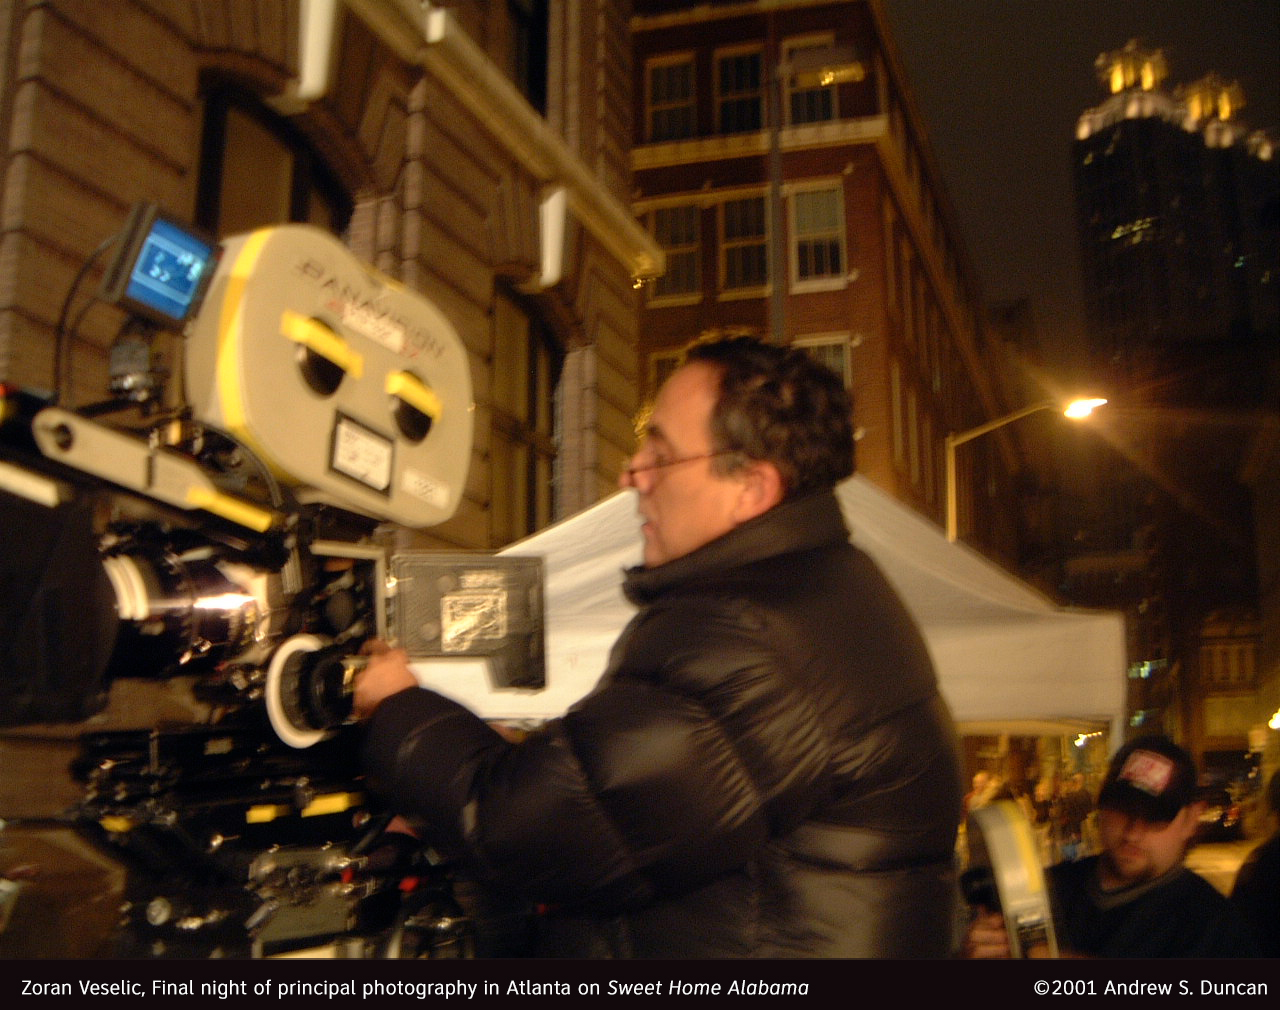 Zoran Veselic, Final night of principal photography in Atlanta on Sweet Home Alabama